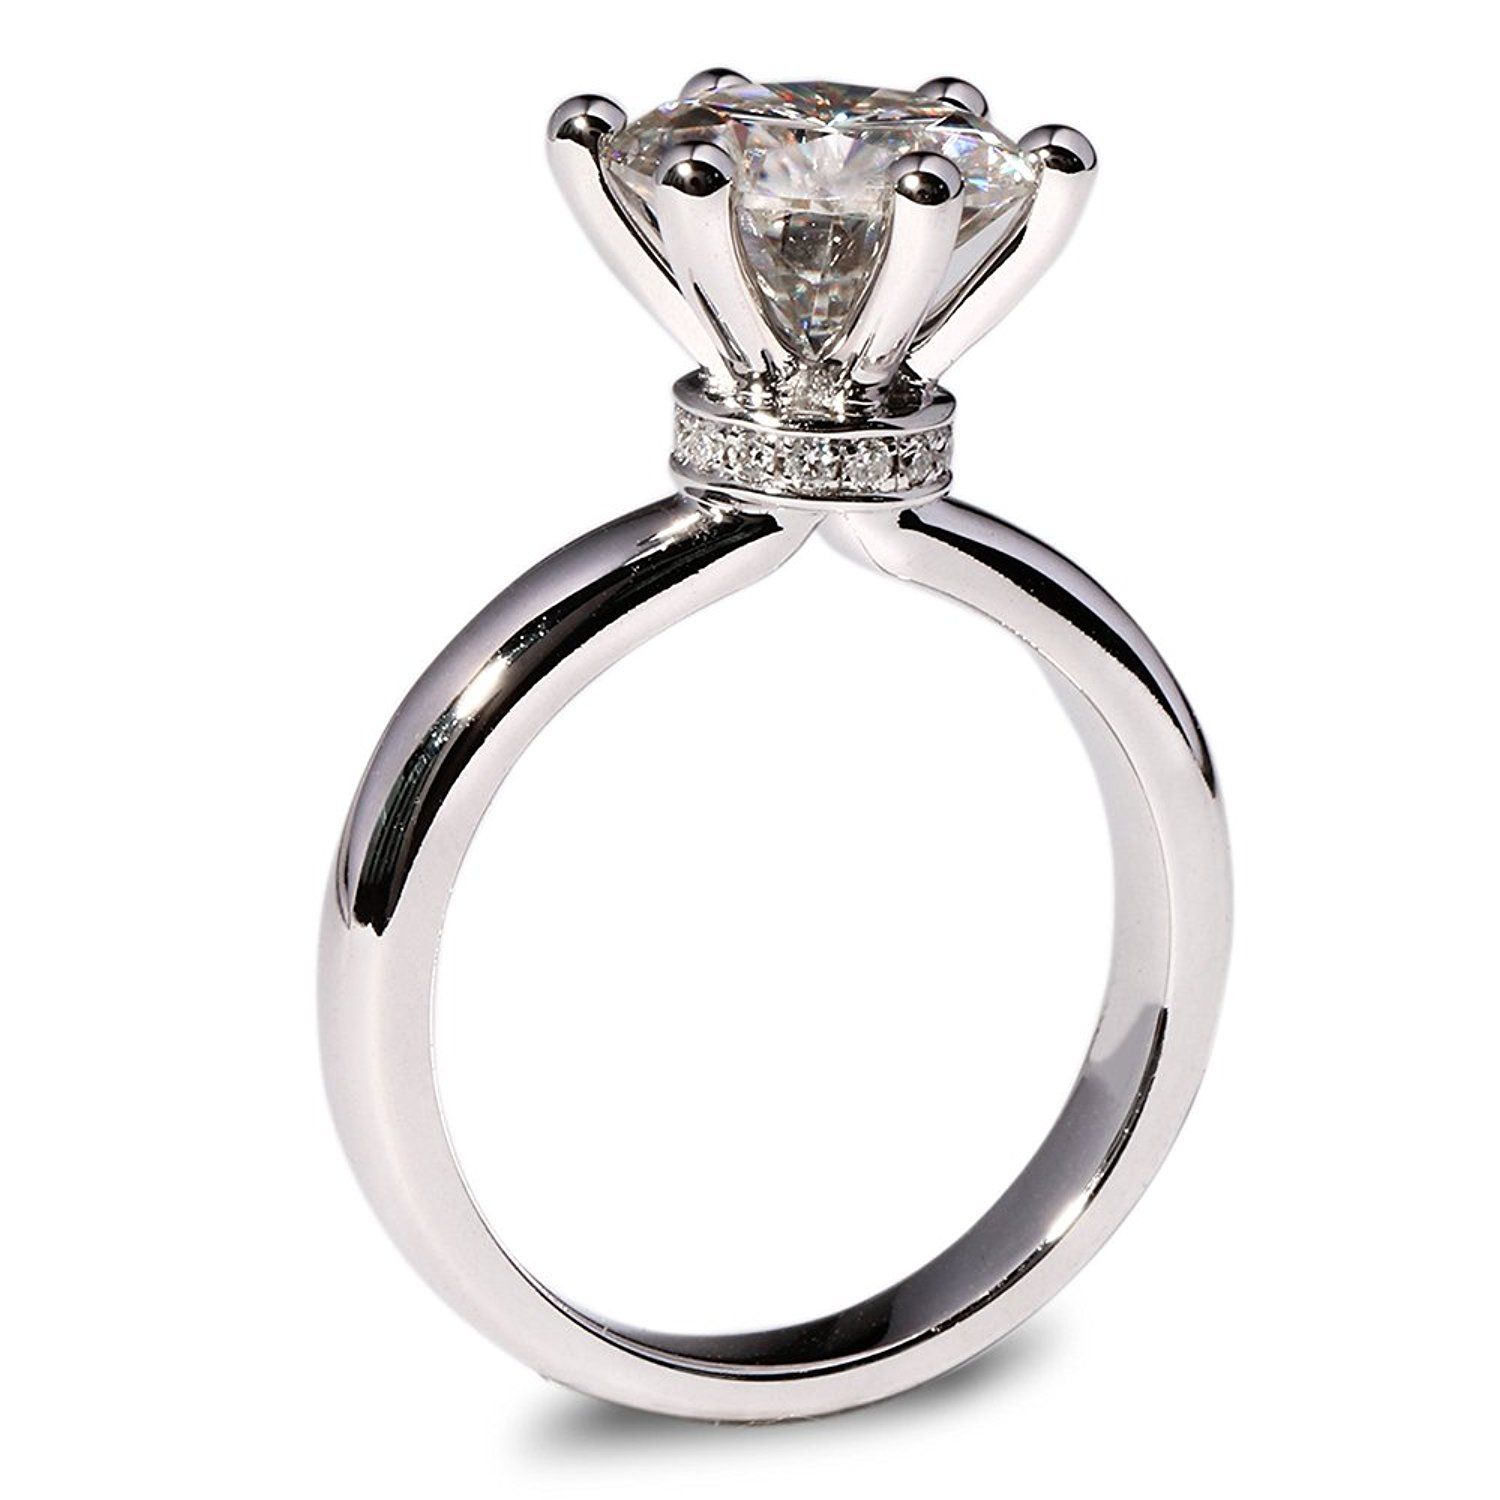 Transgems 3 Carct Super White Lab Moissanite Ring With Real Diamond Acc Engagement Rings Affordable Vintage Engagement Wedding Rings Moissanite Engagement Ring